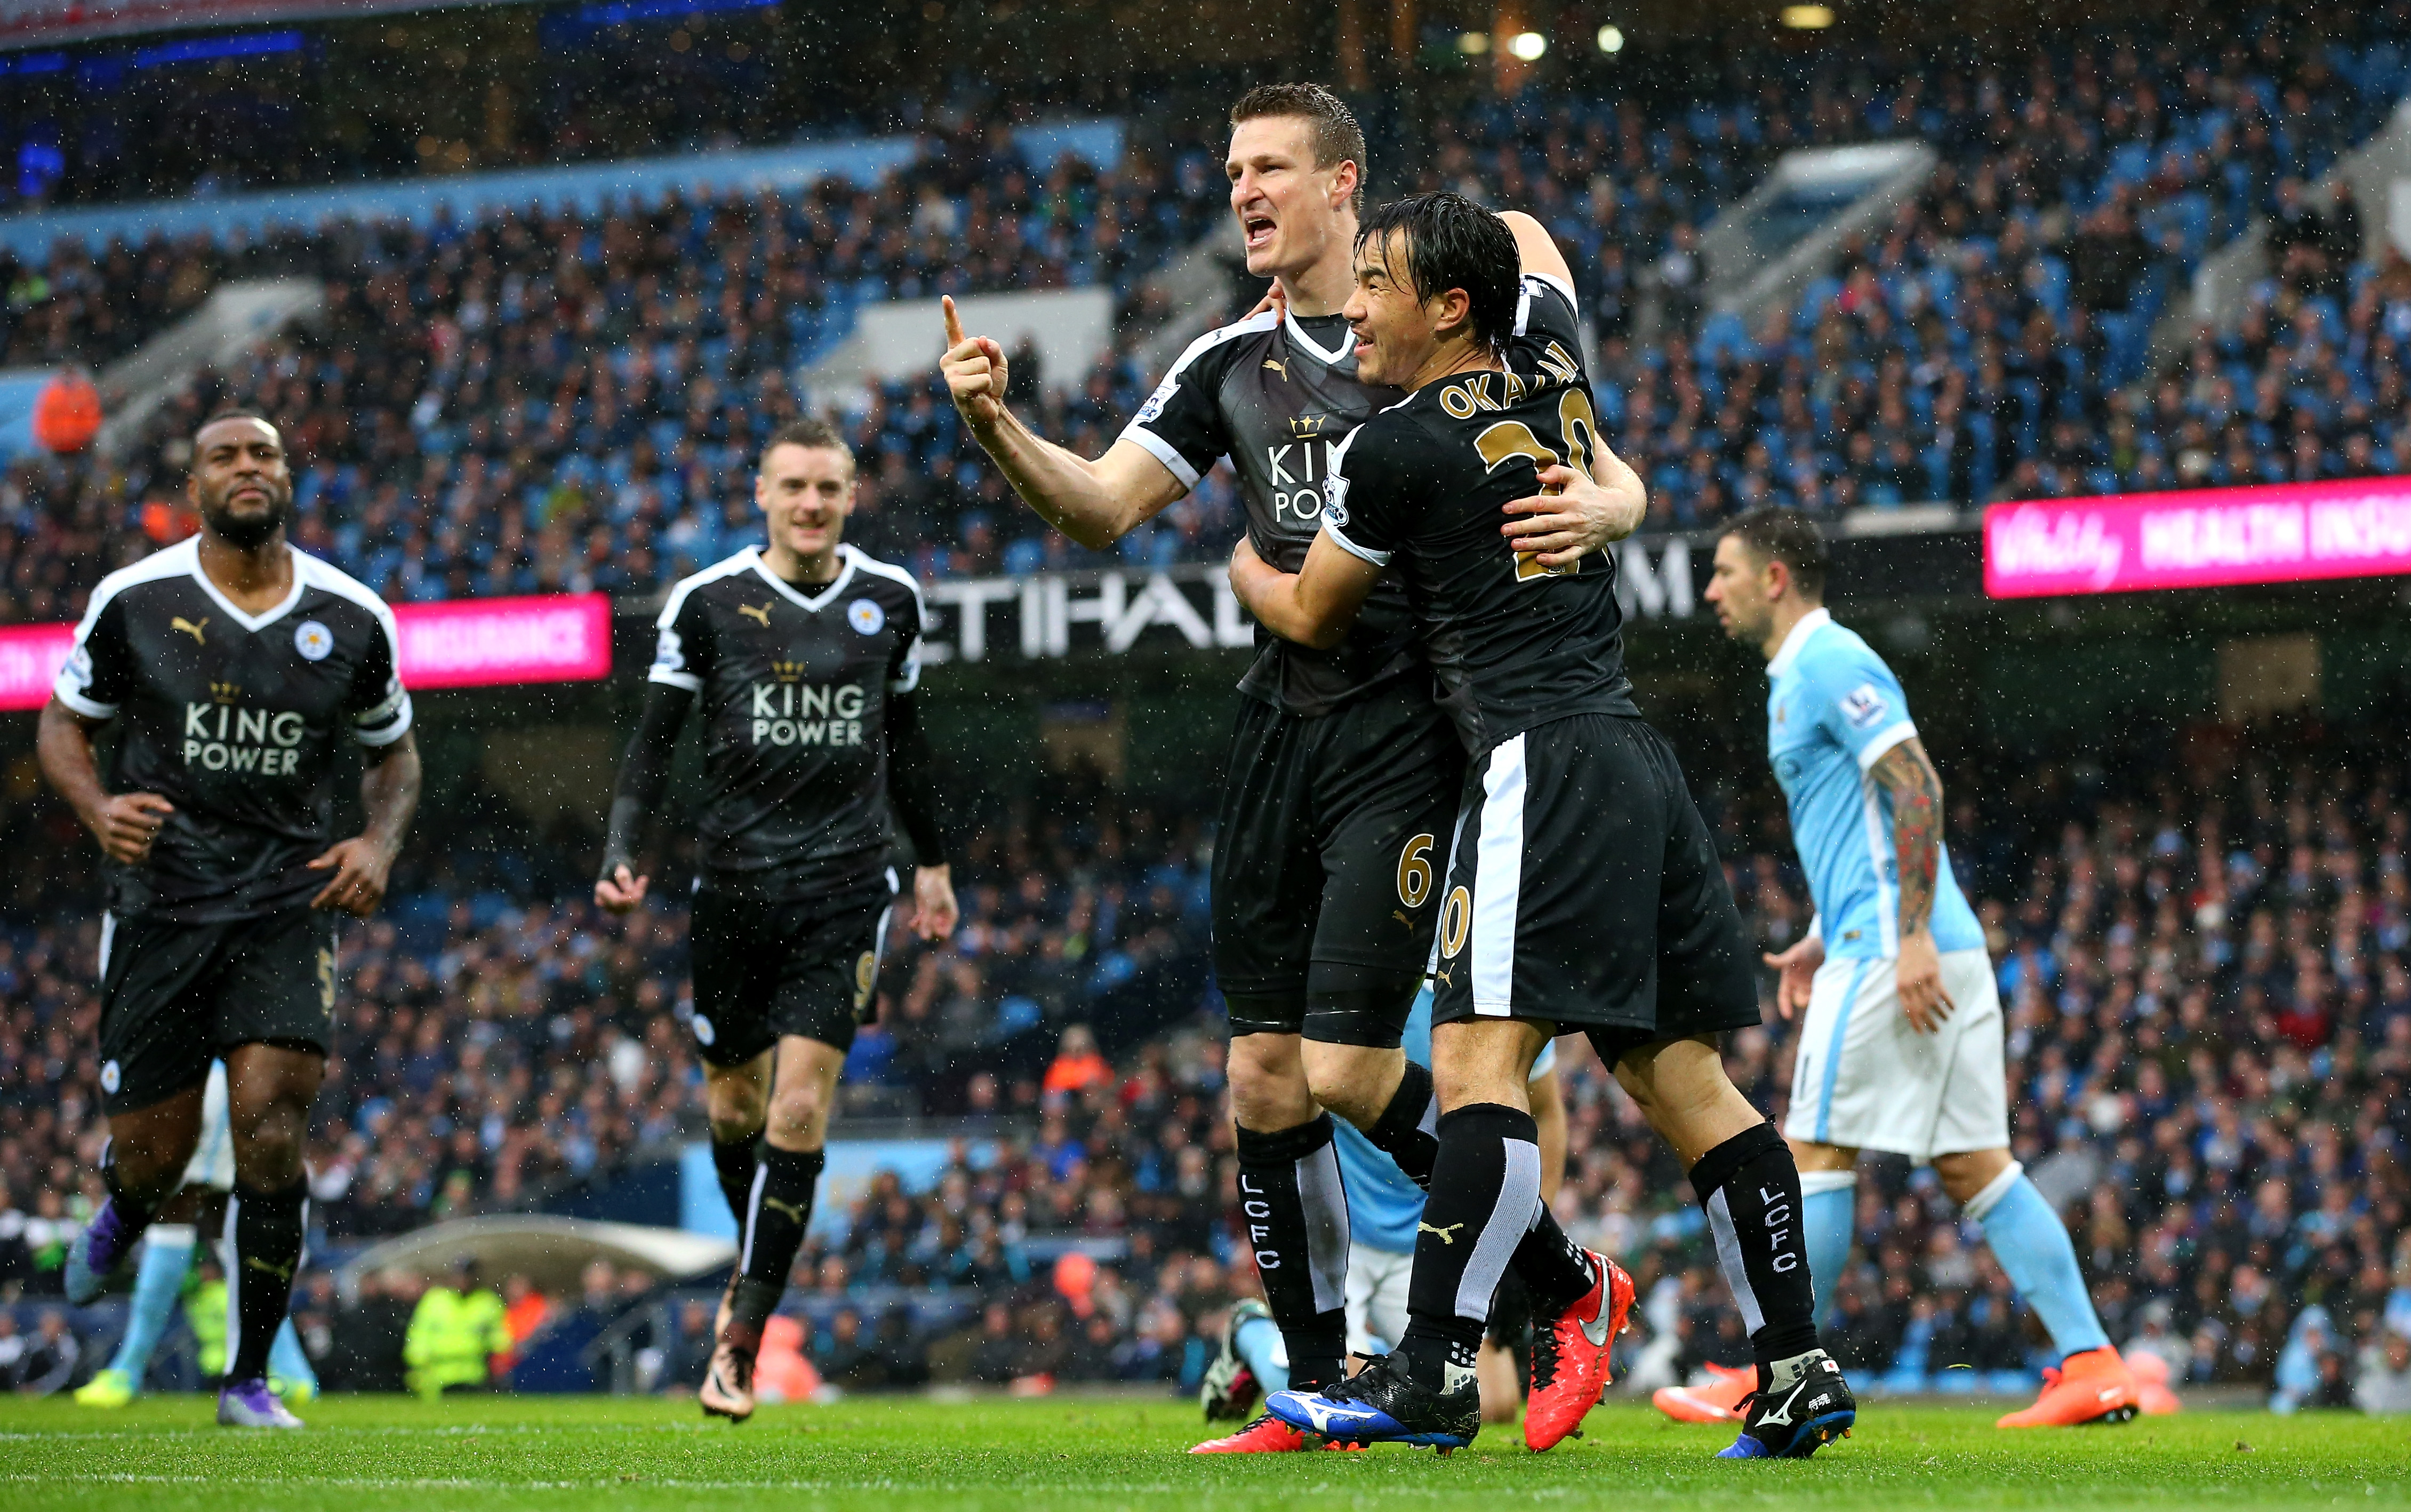 MANCHESTER, ENGLAND - FEBRUARY 06: Robert Huth (3rd L) of Leicester City celebrates scoring his team's first goal with his team mate Shinji Okazaki (2nd R) during the Barclays Premier League match between Manchester City and Leicester City at the Etihad Stadium on February 6, 2016 in Manchester, England. (Photo by Alex Livesey/Getty Images)